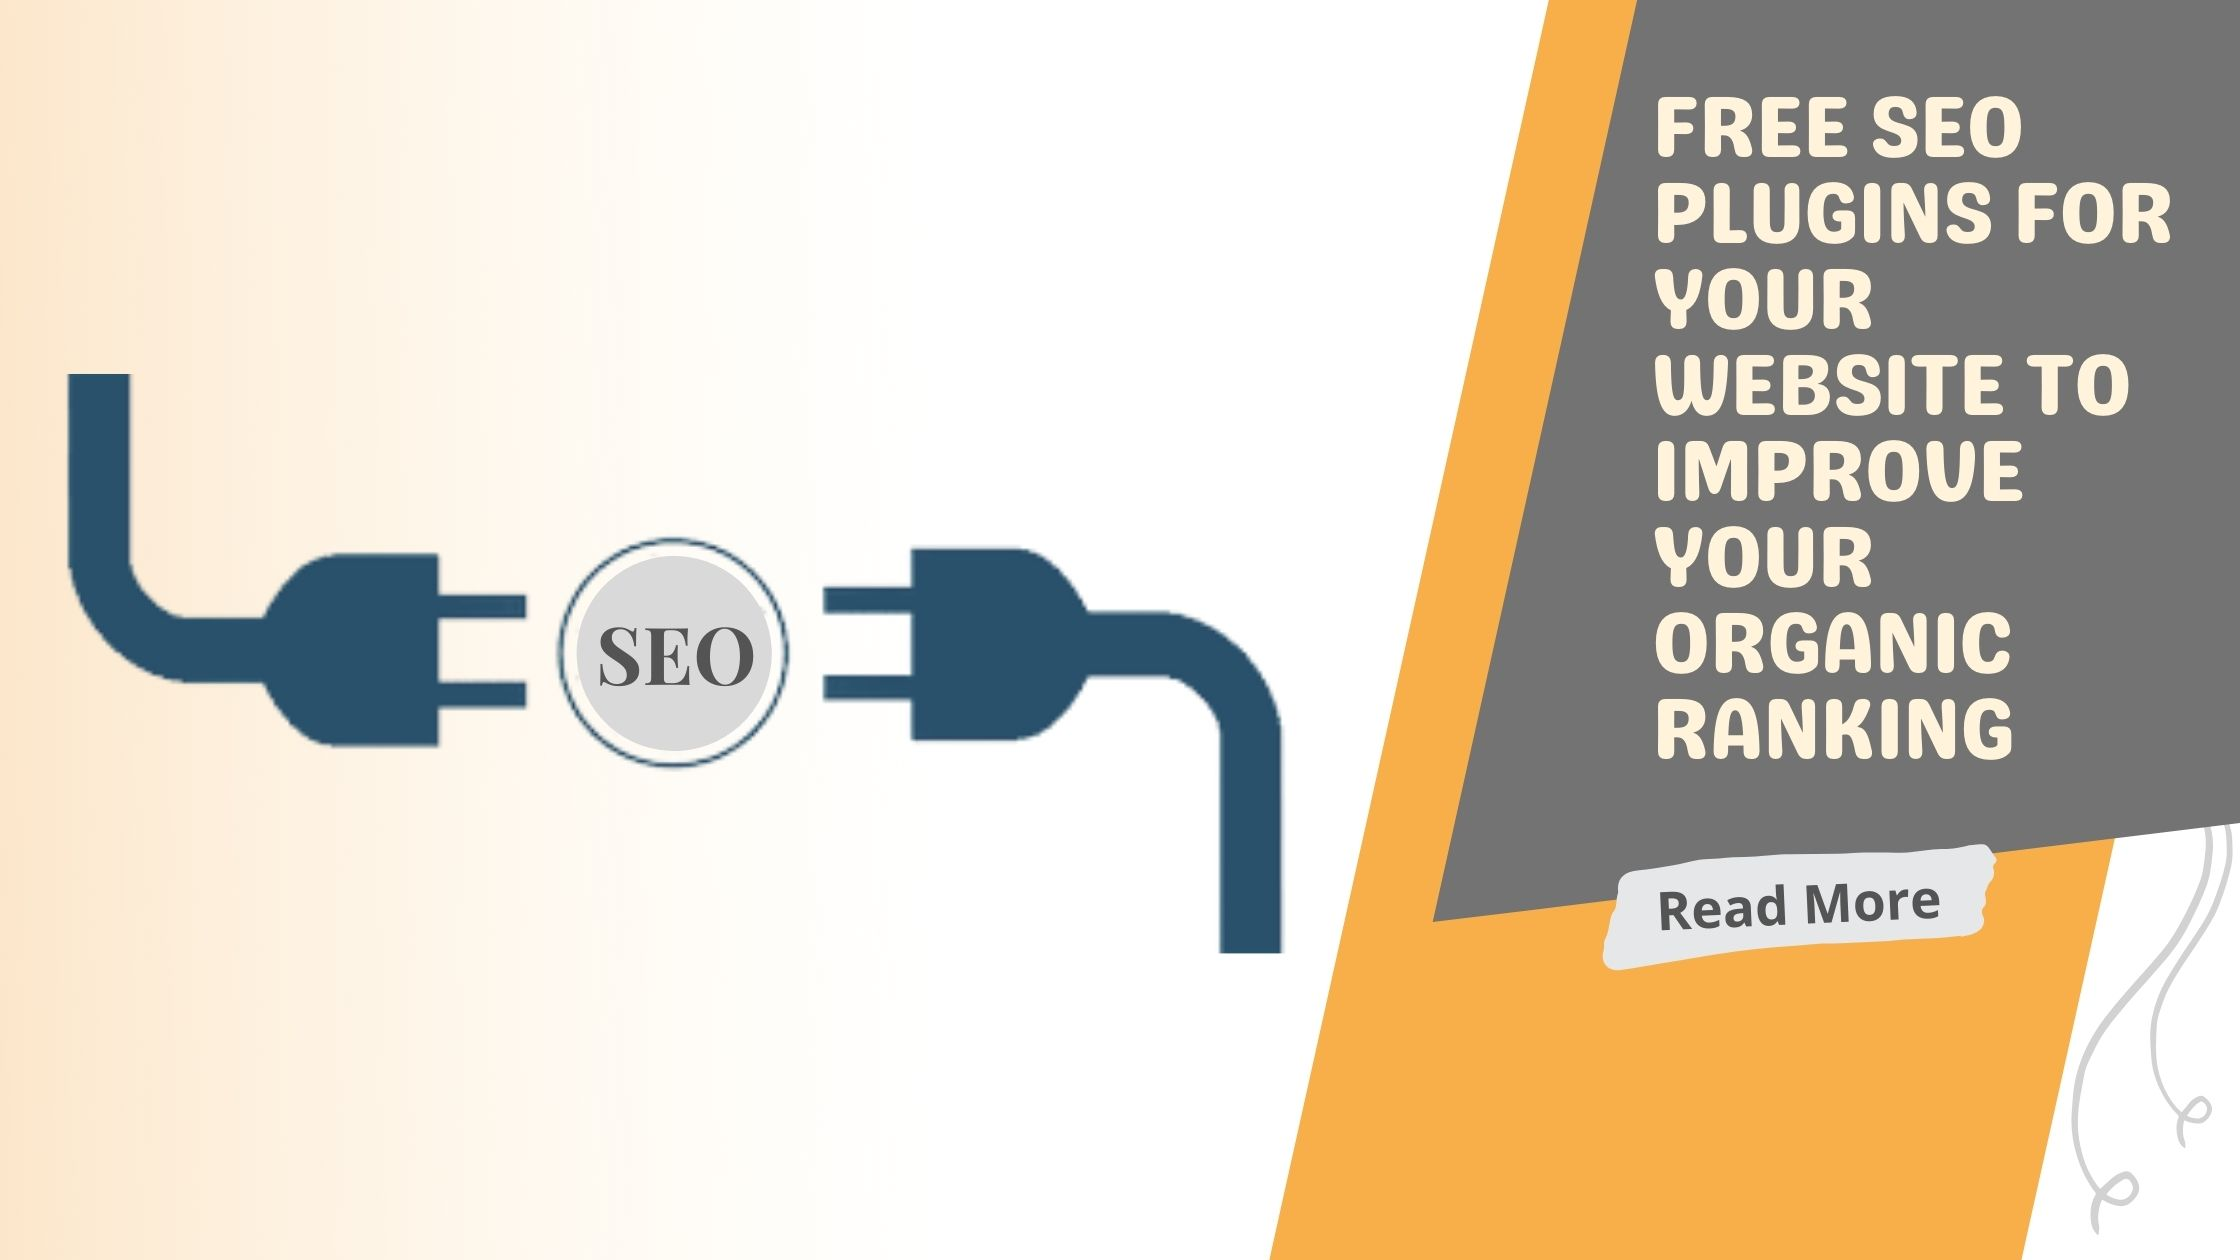 Free SEO Plugins For Your Website To Improve Your Organic Ranking